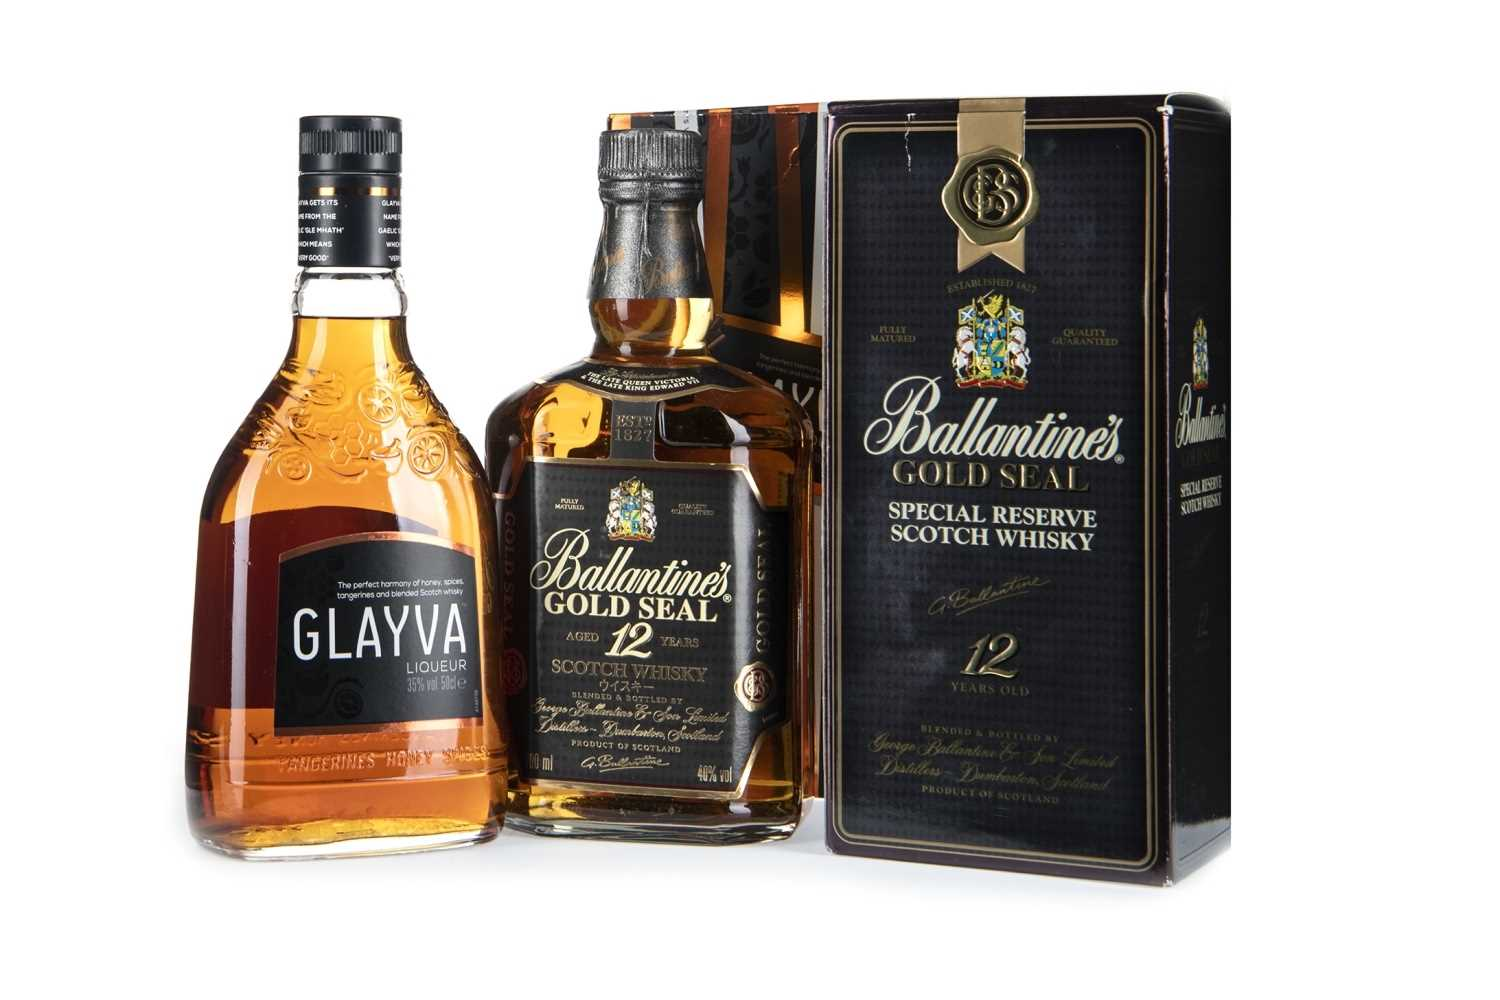 Lot 410-GLAYVA AND BALLANTINE'S GOLD SEAL 12 YEARS OLD